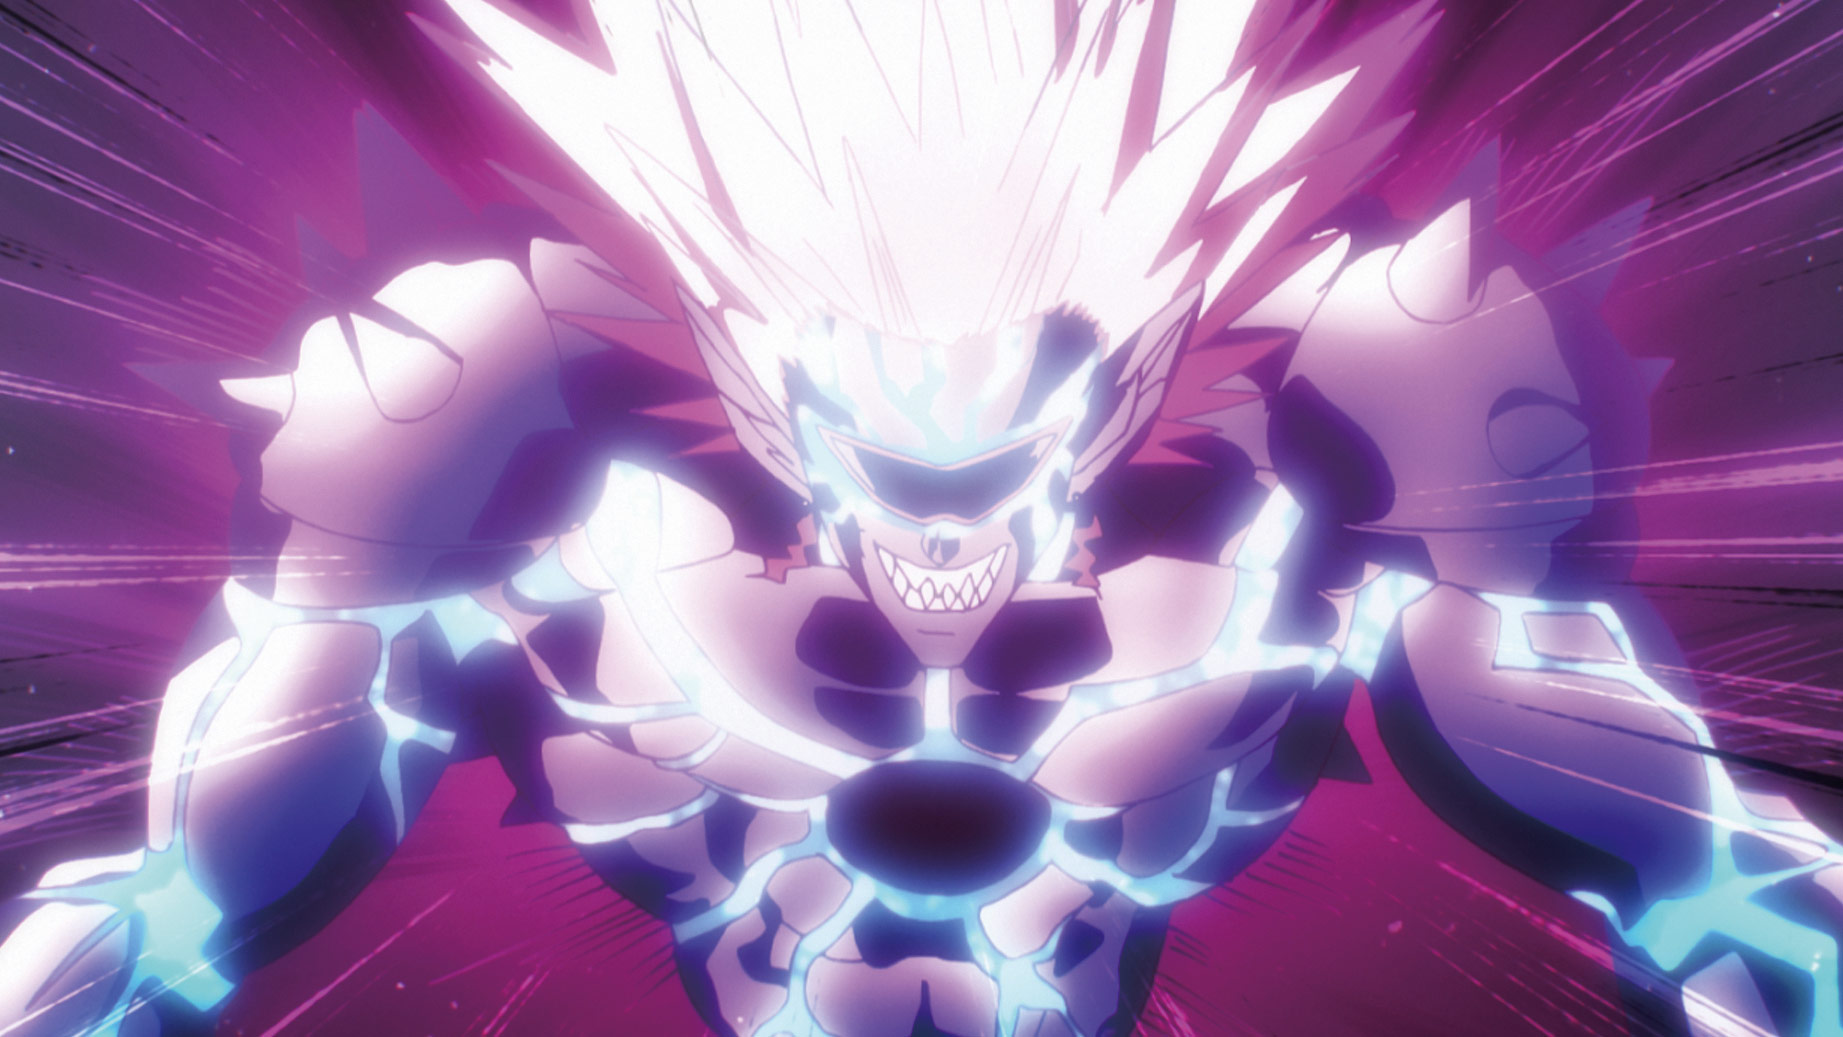 August 2017, One Punch Man 2 image